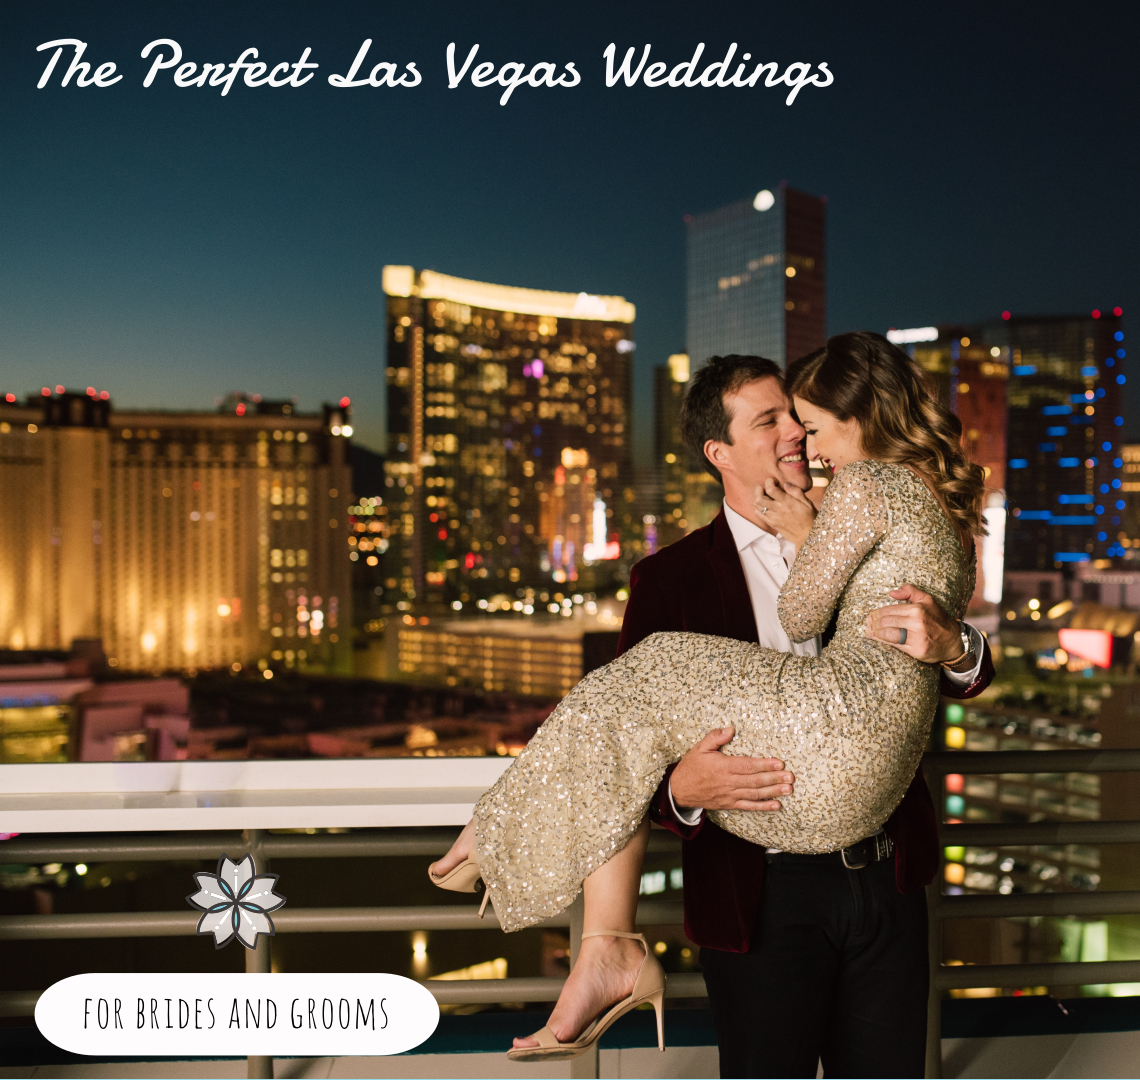 The Perfect Las Vegas Wedding